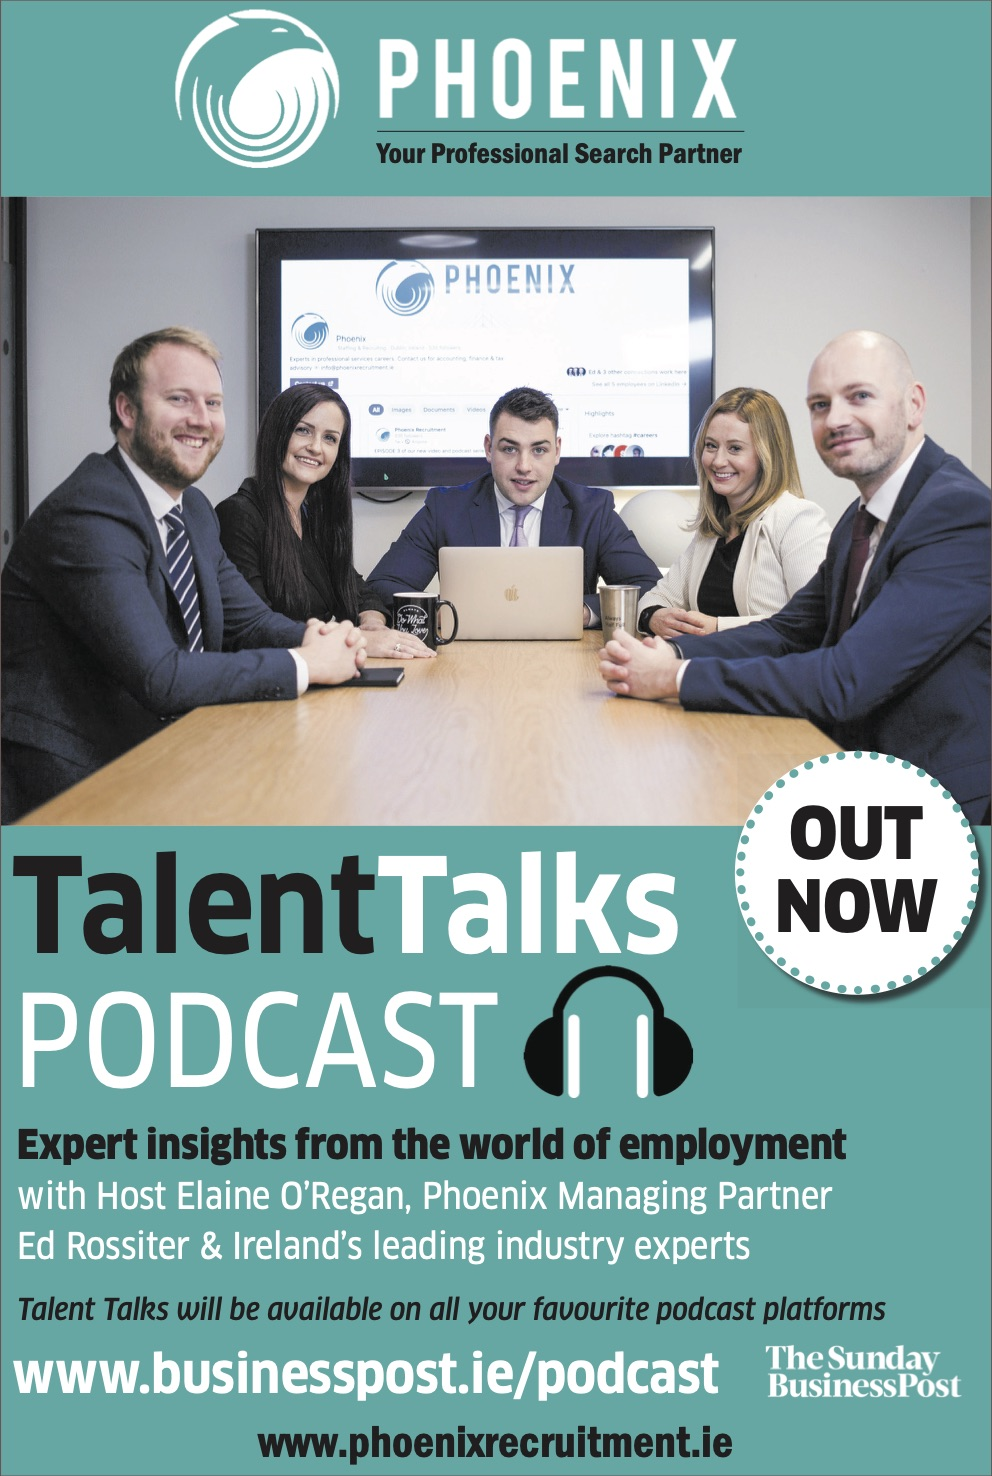 New Podcast Alert! Phoenix Talent Talks in partnership with the Business Post